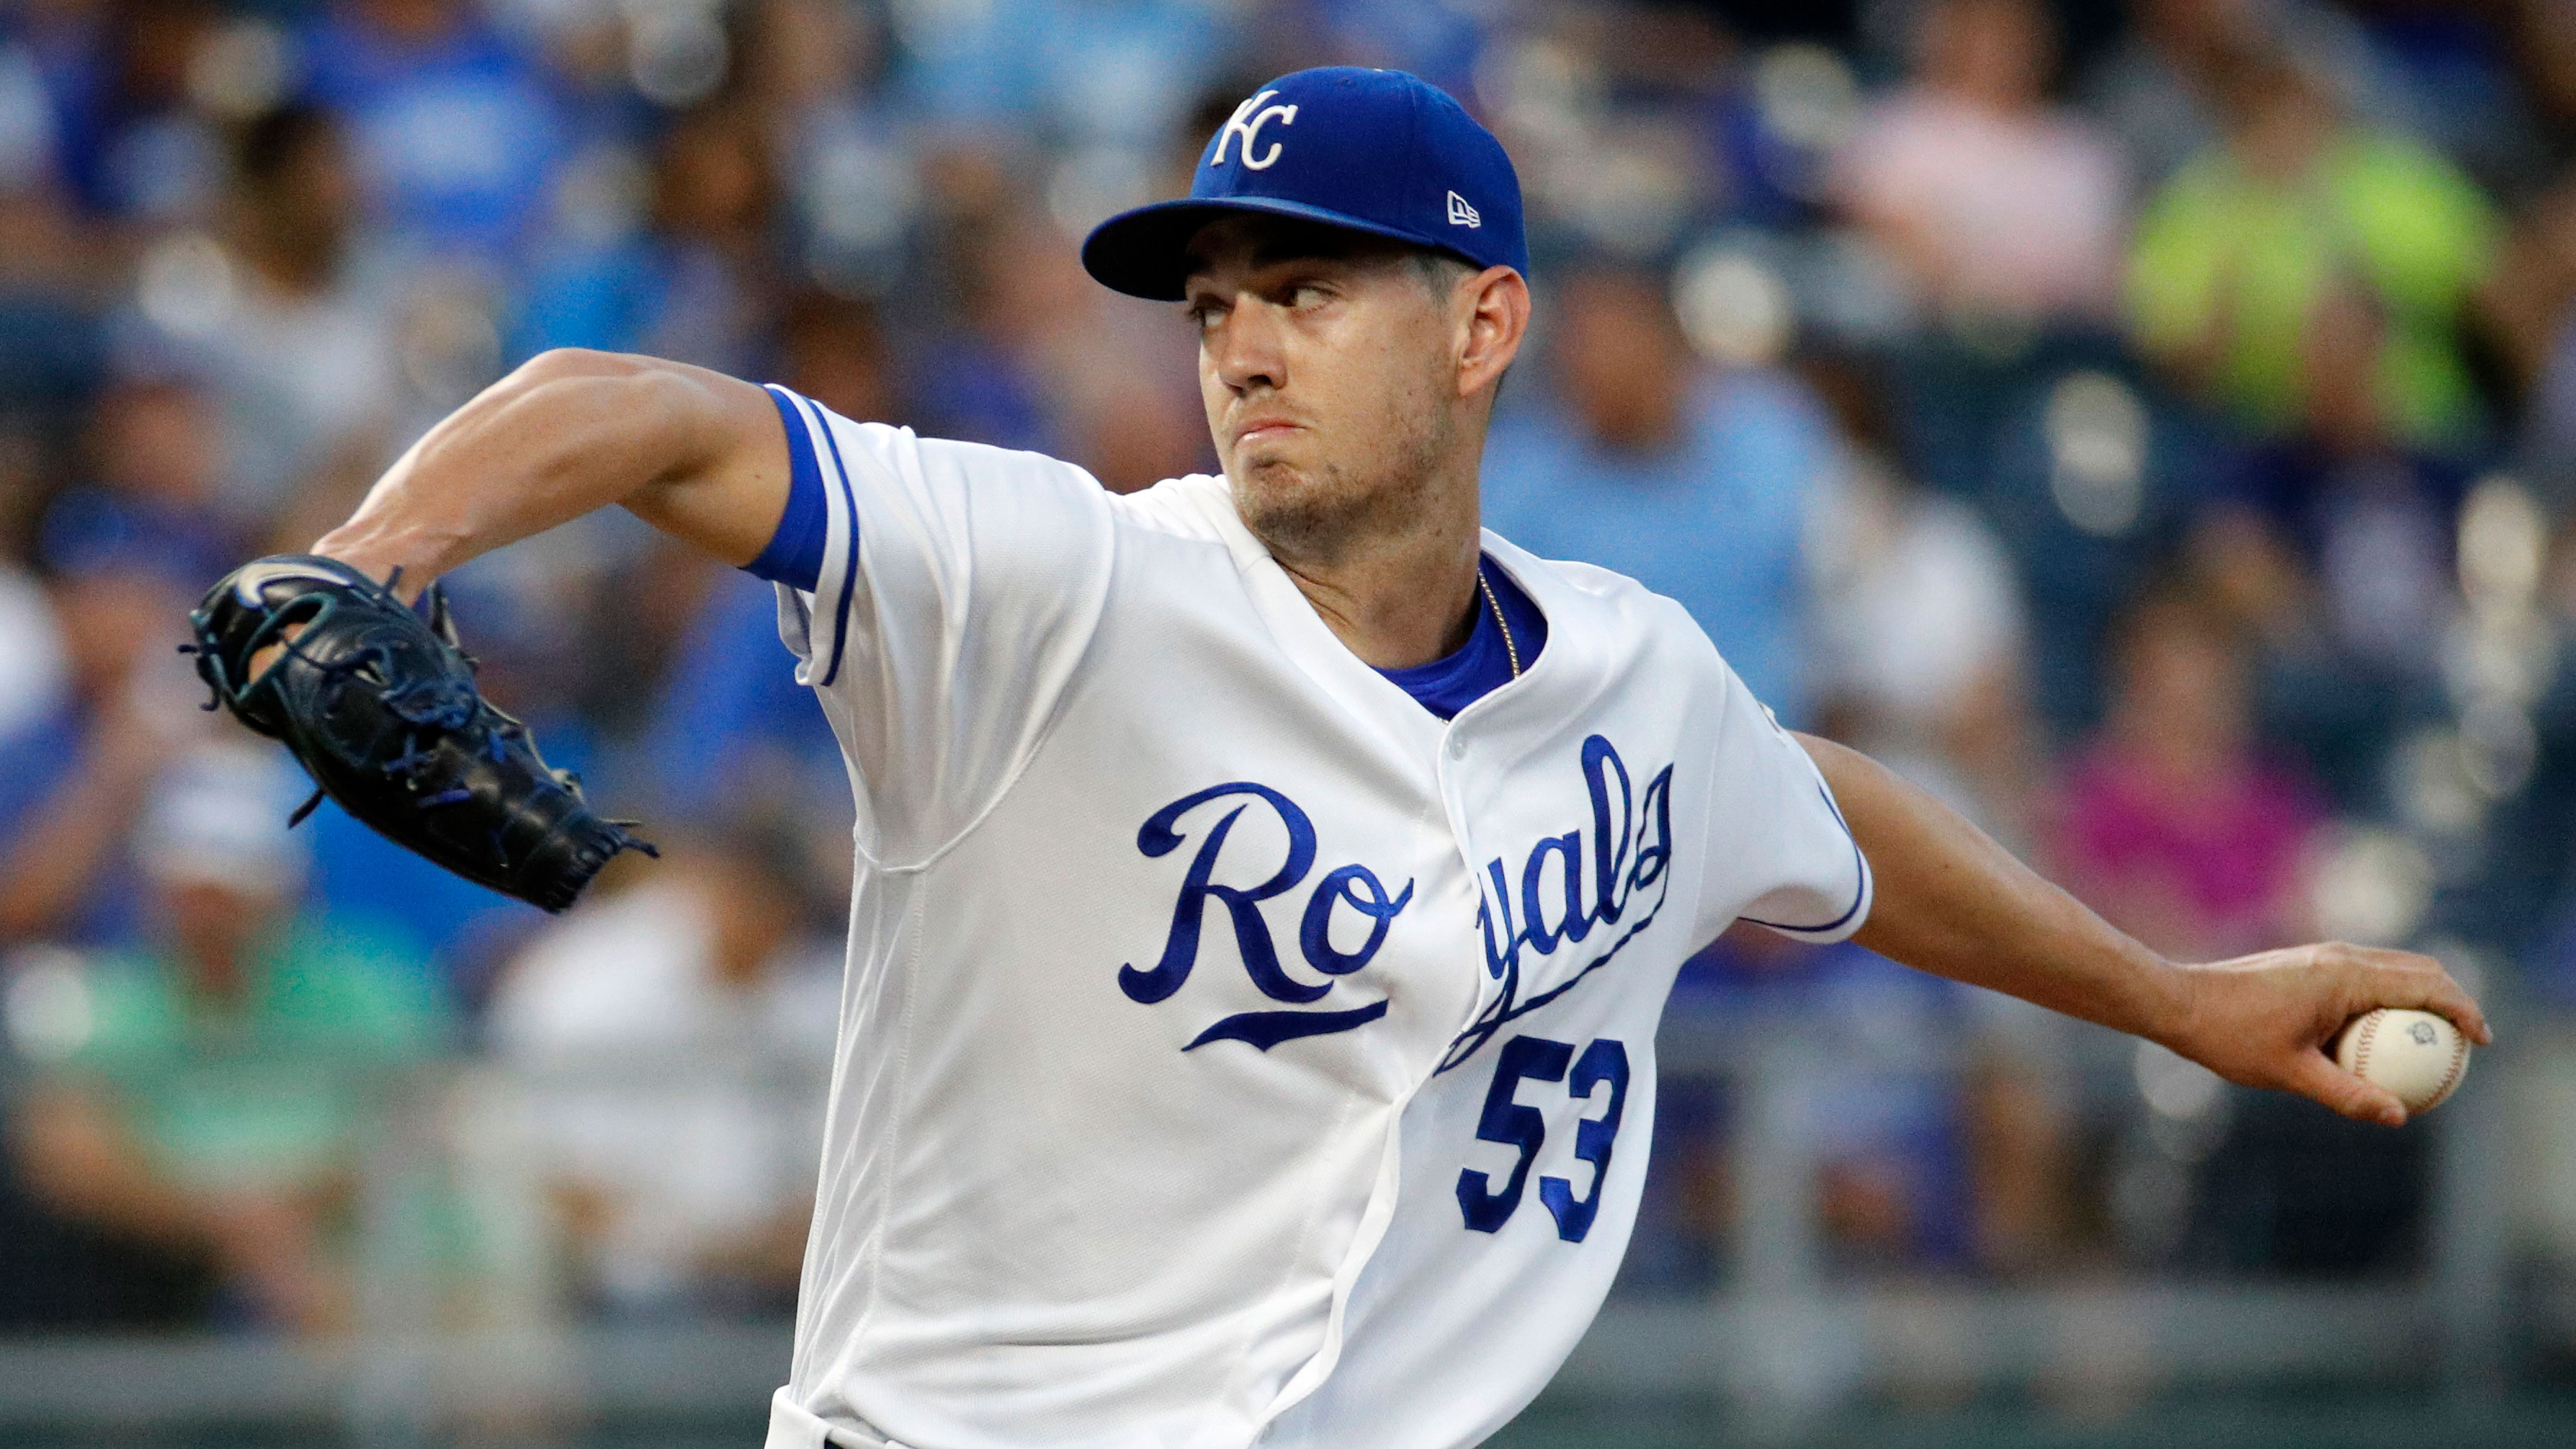 Royals reinstate Skoglund, recall Hill from Omaha and DFA Boxberger